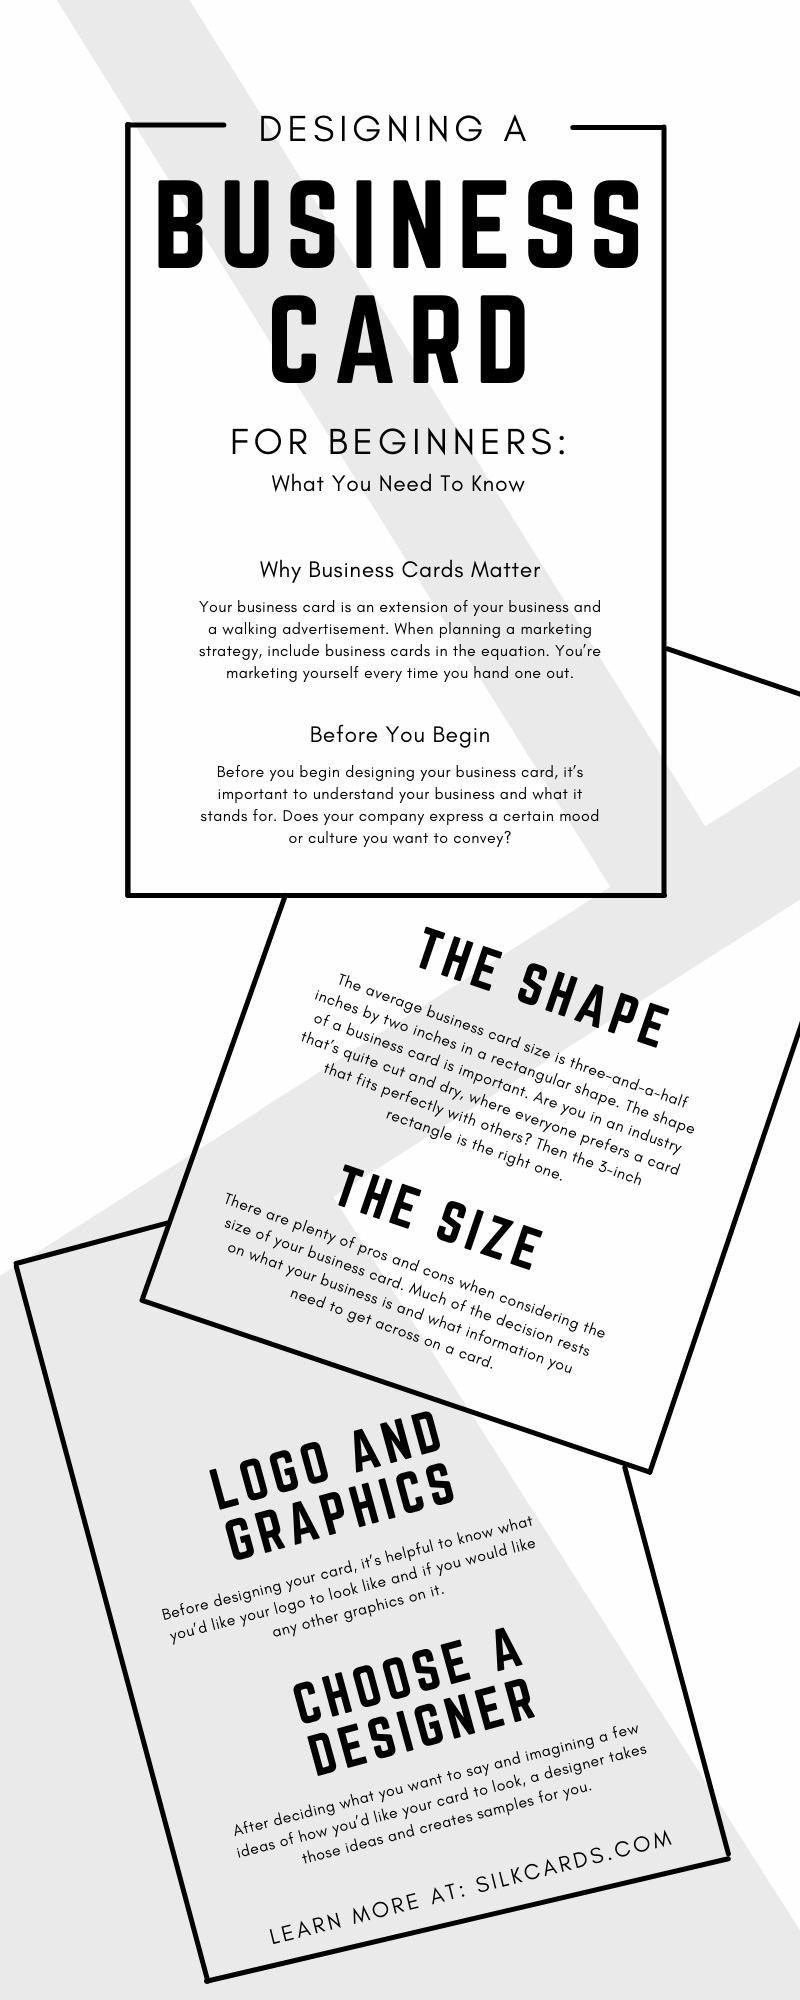 Designing a Business Card for Beginners: What You Need To Know